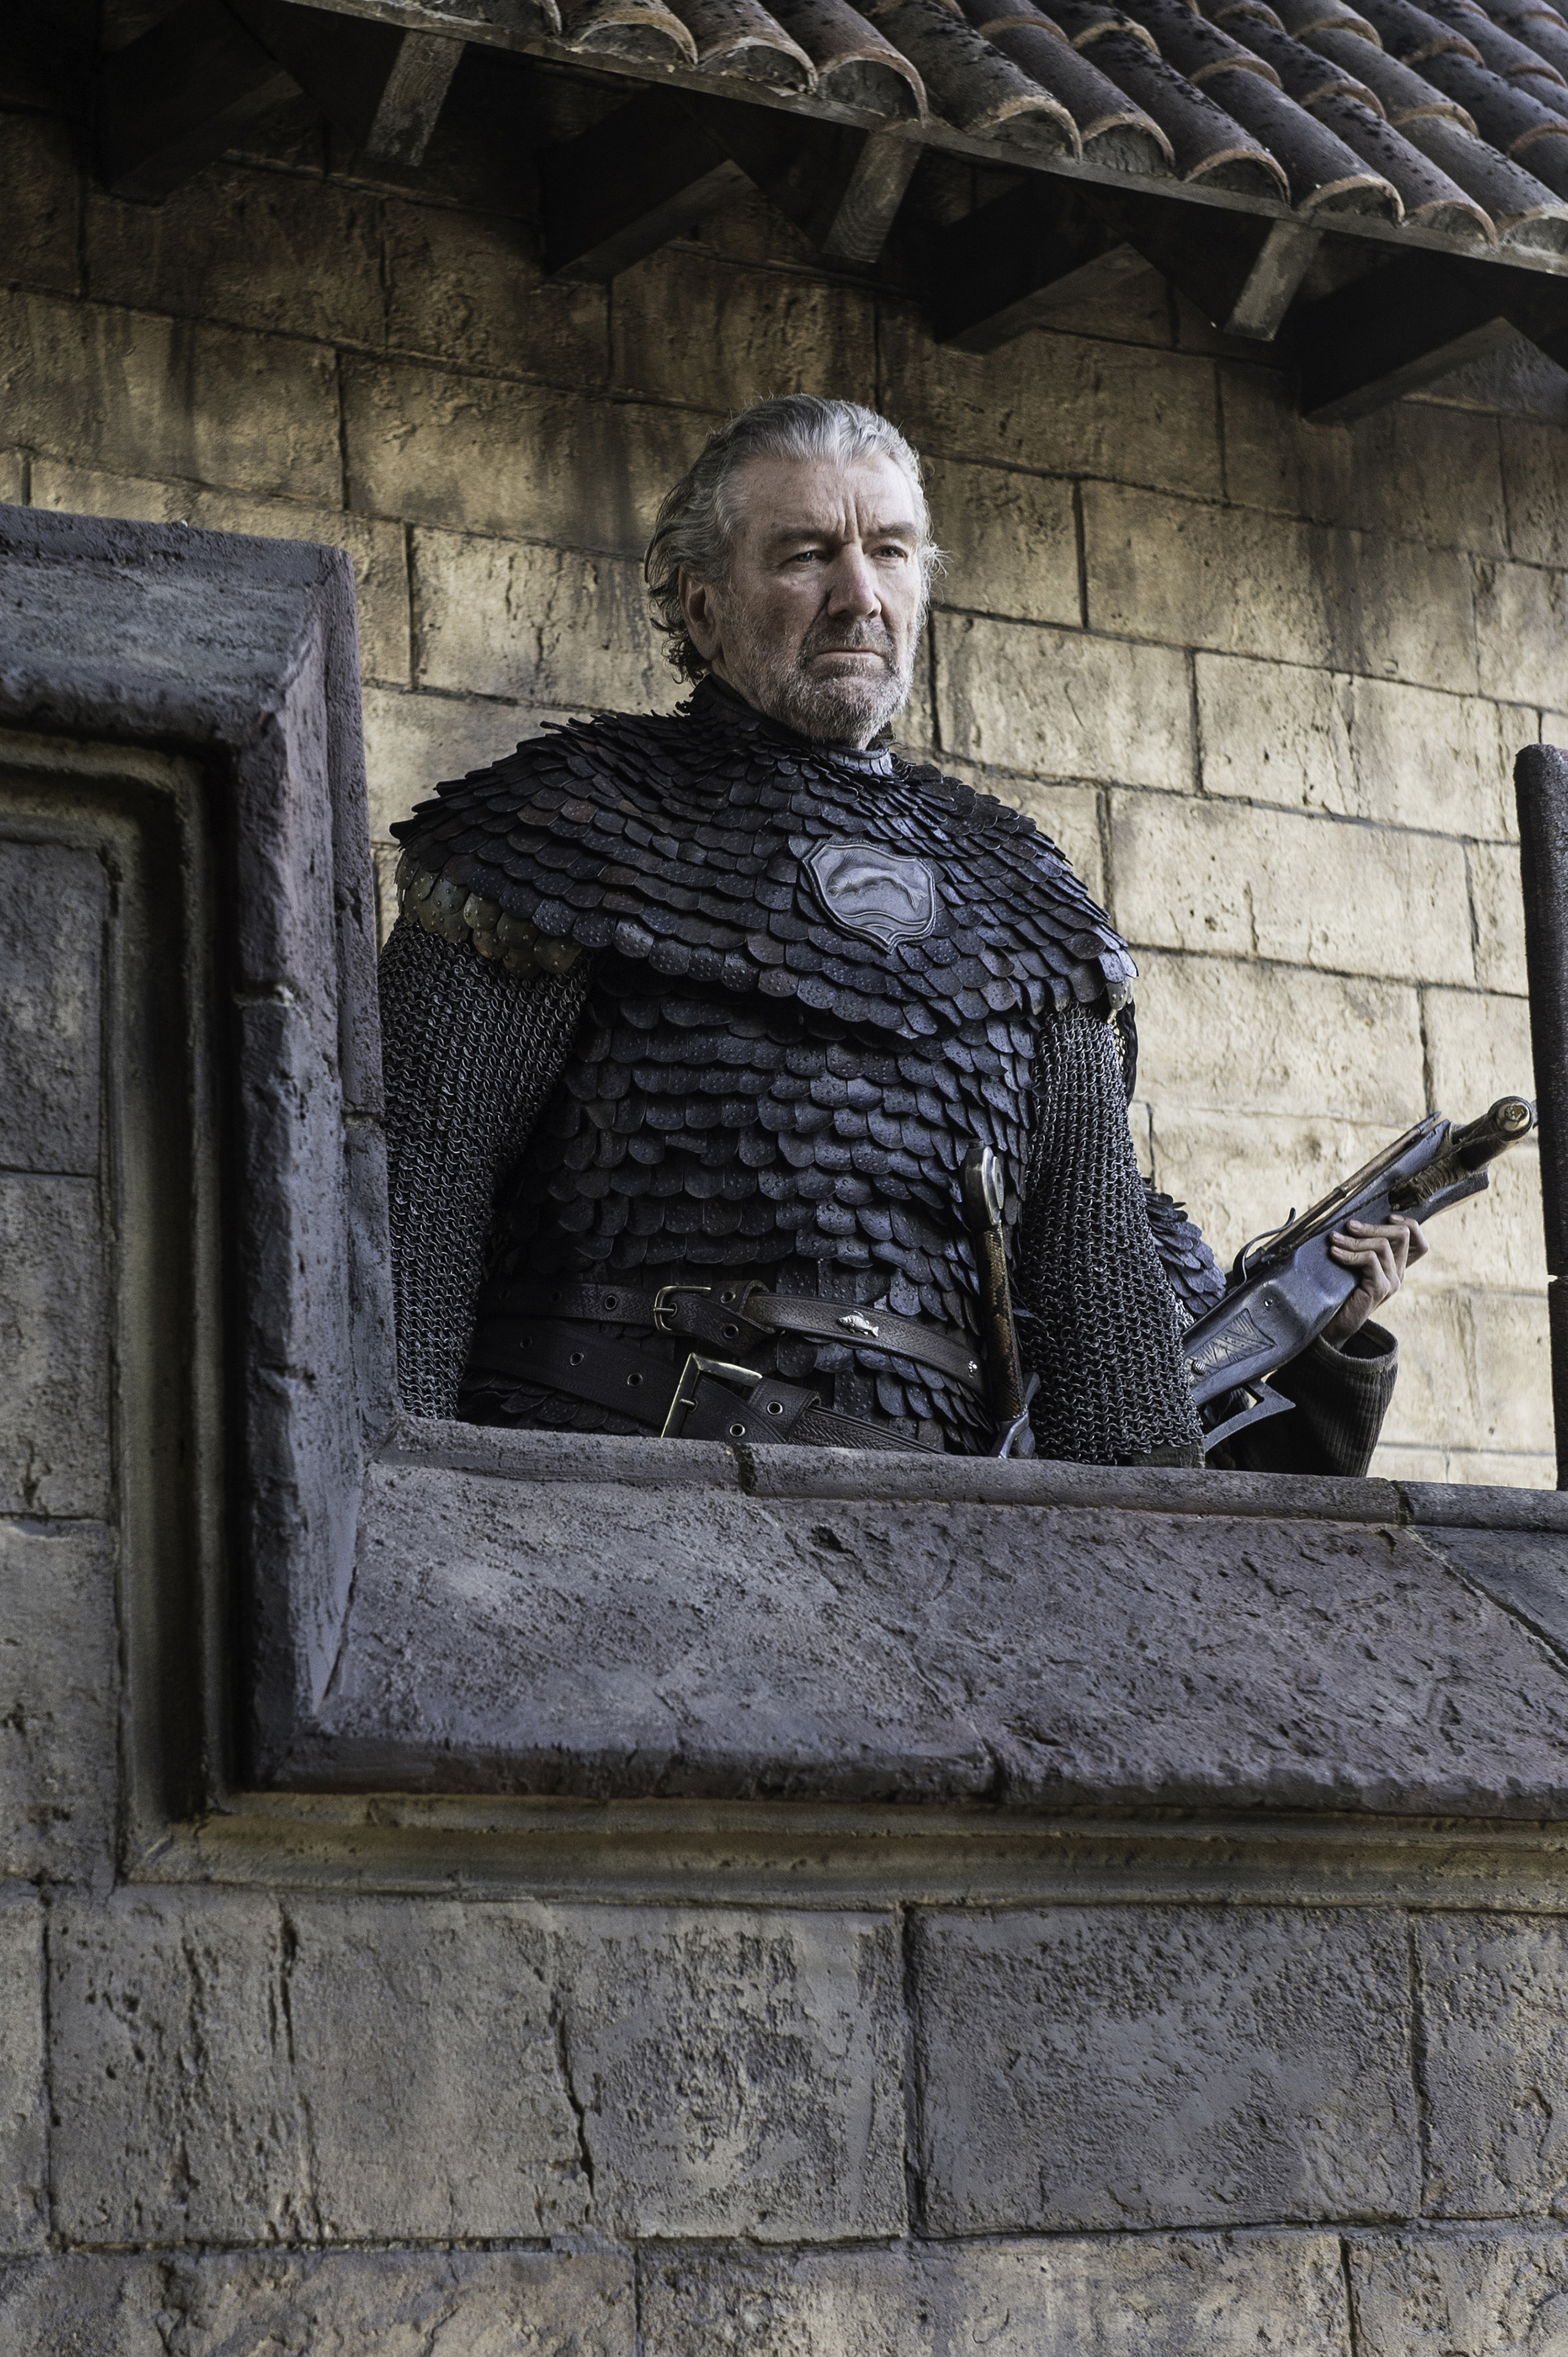 Clive Russell as Brynden Tully in Game of Thrones.